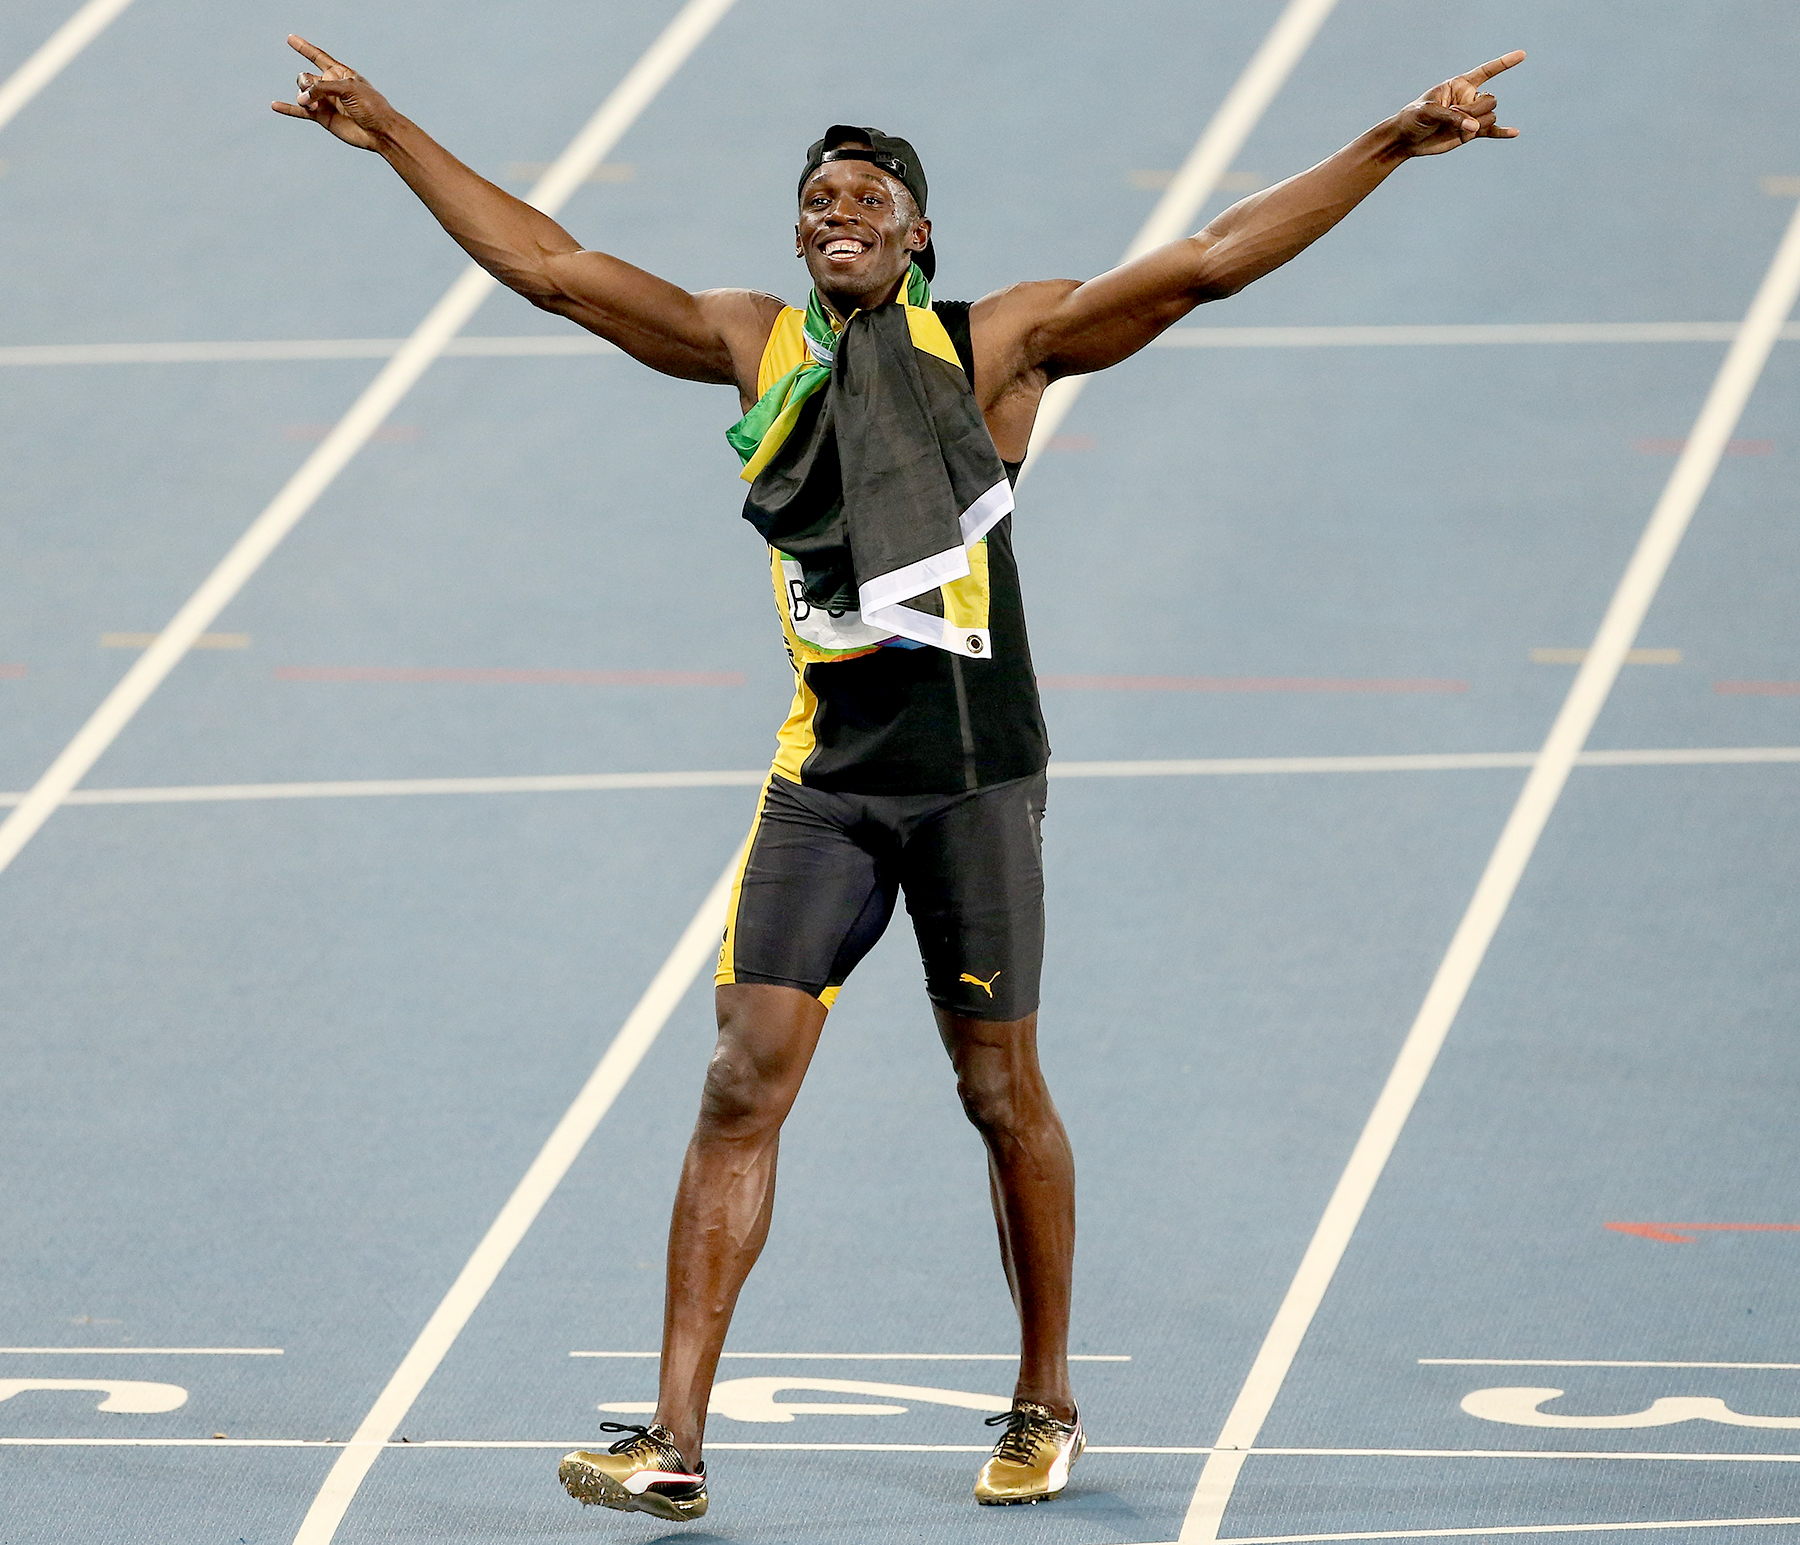 Usain Bolt of Jamaica celebrates victory after the Men's 4 x 100m Relay Final of the Rio 2016 Olympic Games at the Olympic Stadium in Rio de Janeiro, Brazil on August 19, 2016.